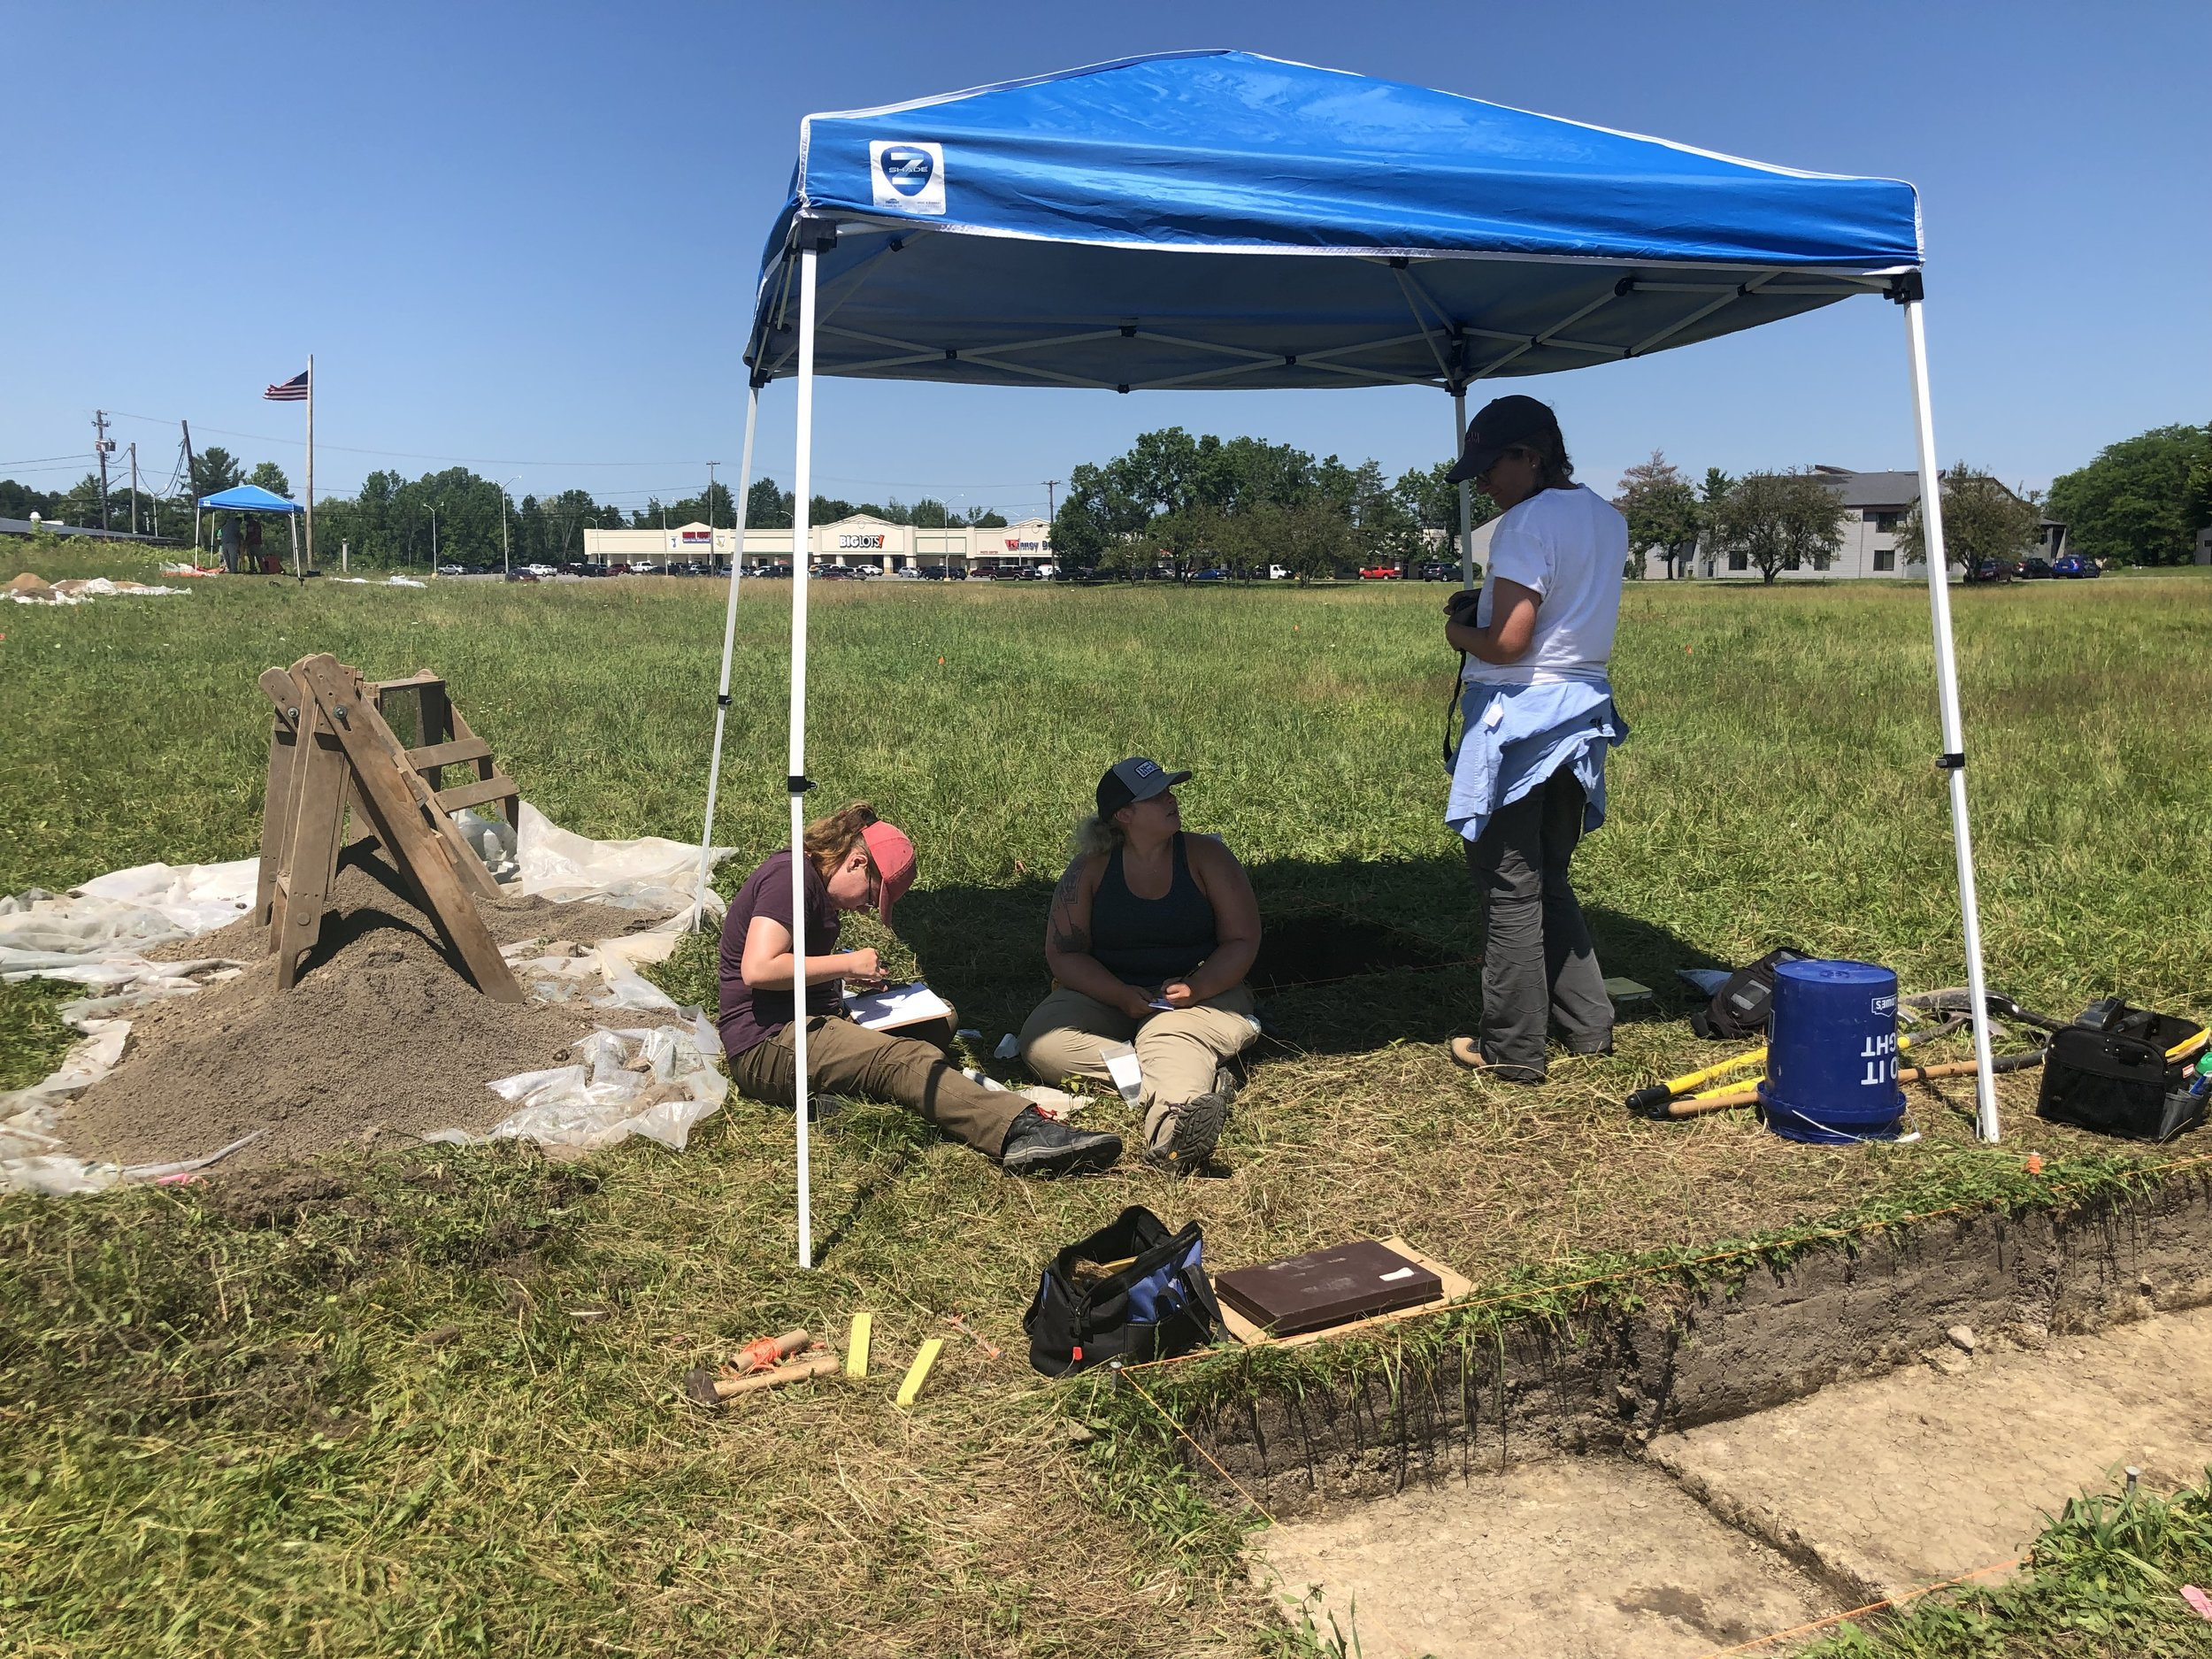 Dr. Kruzcek-Aaron speaks with SUNY Potsdam archaeology students Emily Willis, senior, and Tara Stern, junior, during the second-to-last day of the Camp Union dig. (Photo credit: Nicole Roché)